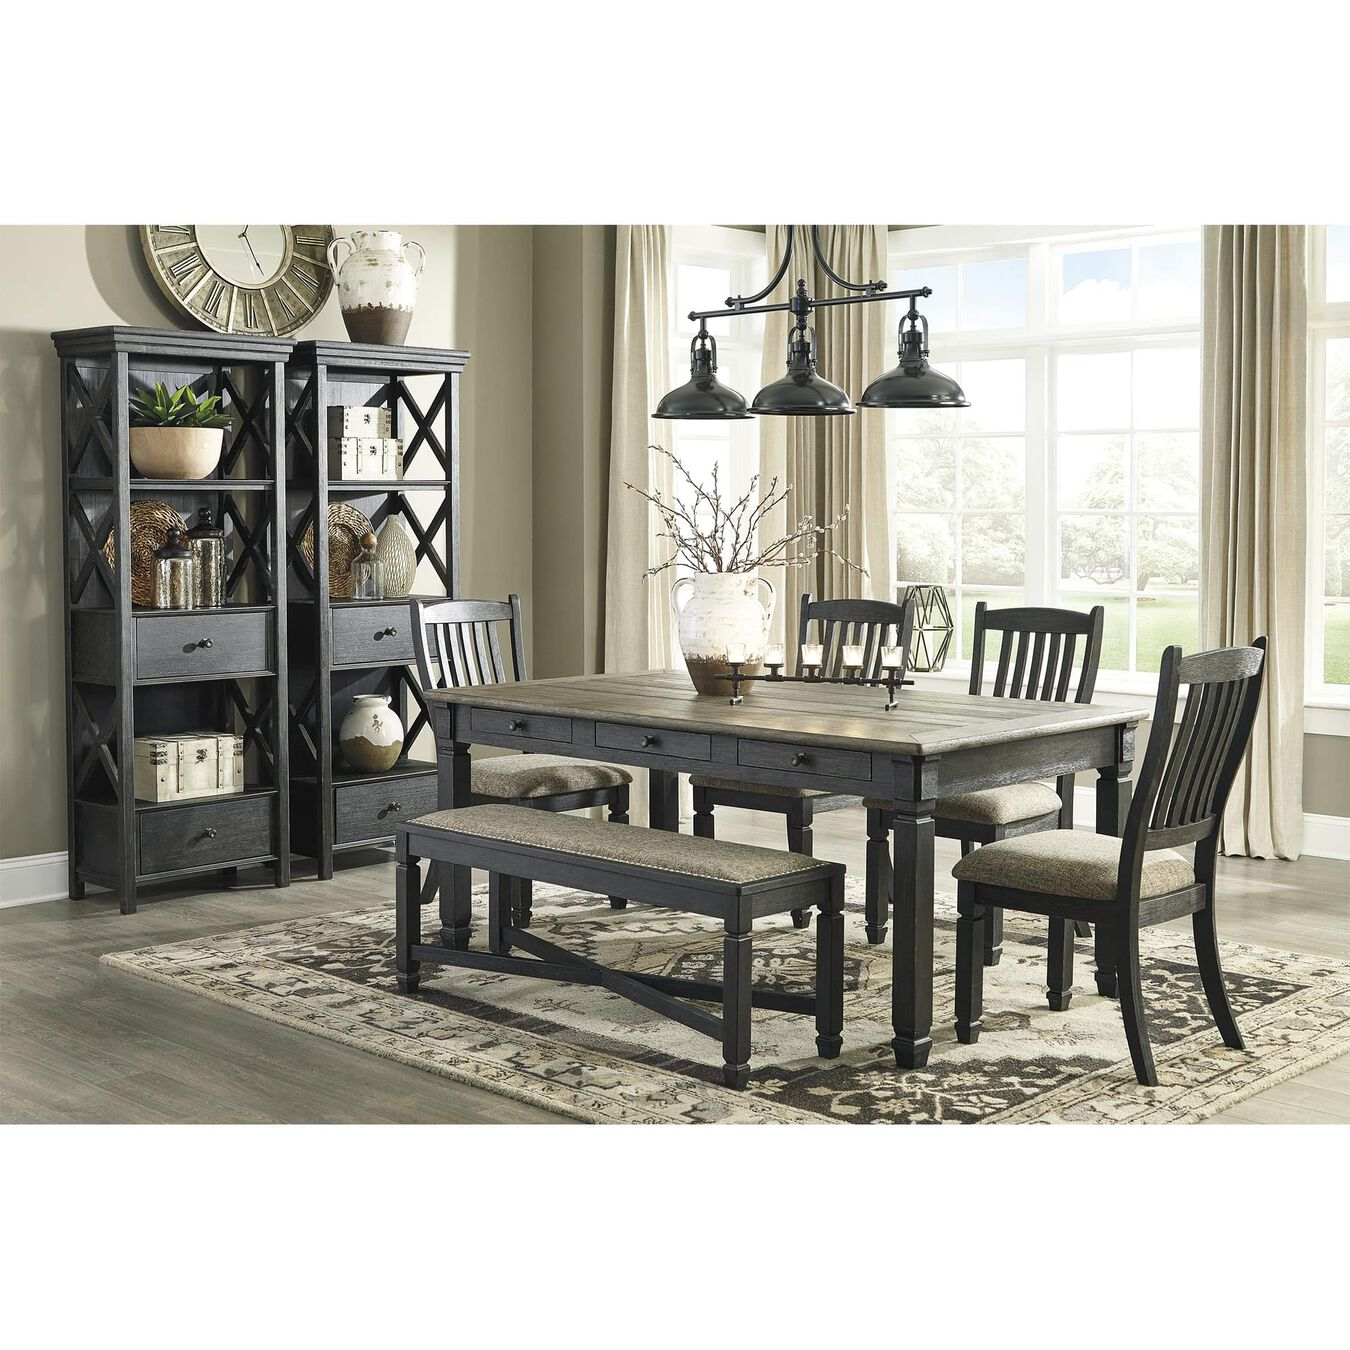 8 piece dining room set formal kitchen table 8piece tyler creek dining room collection ashley furniture ind sets